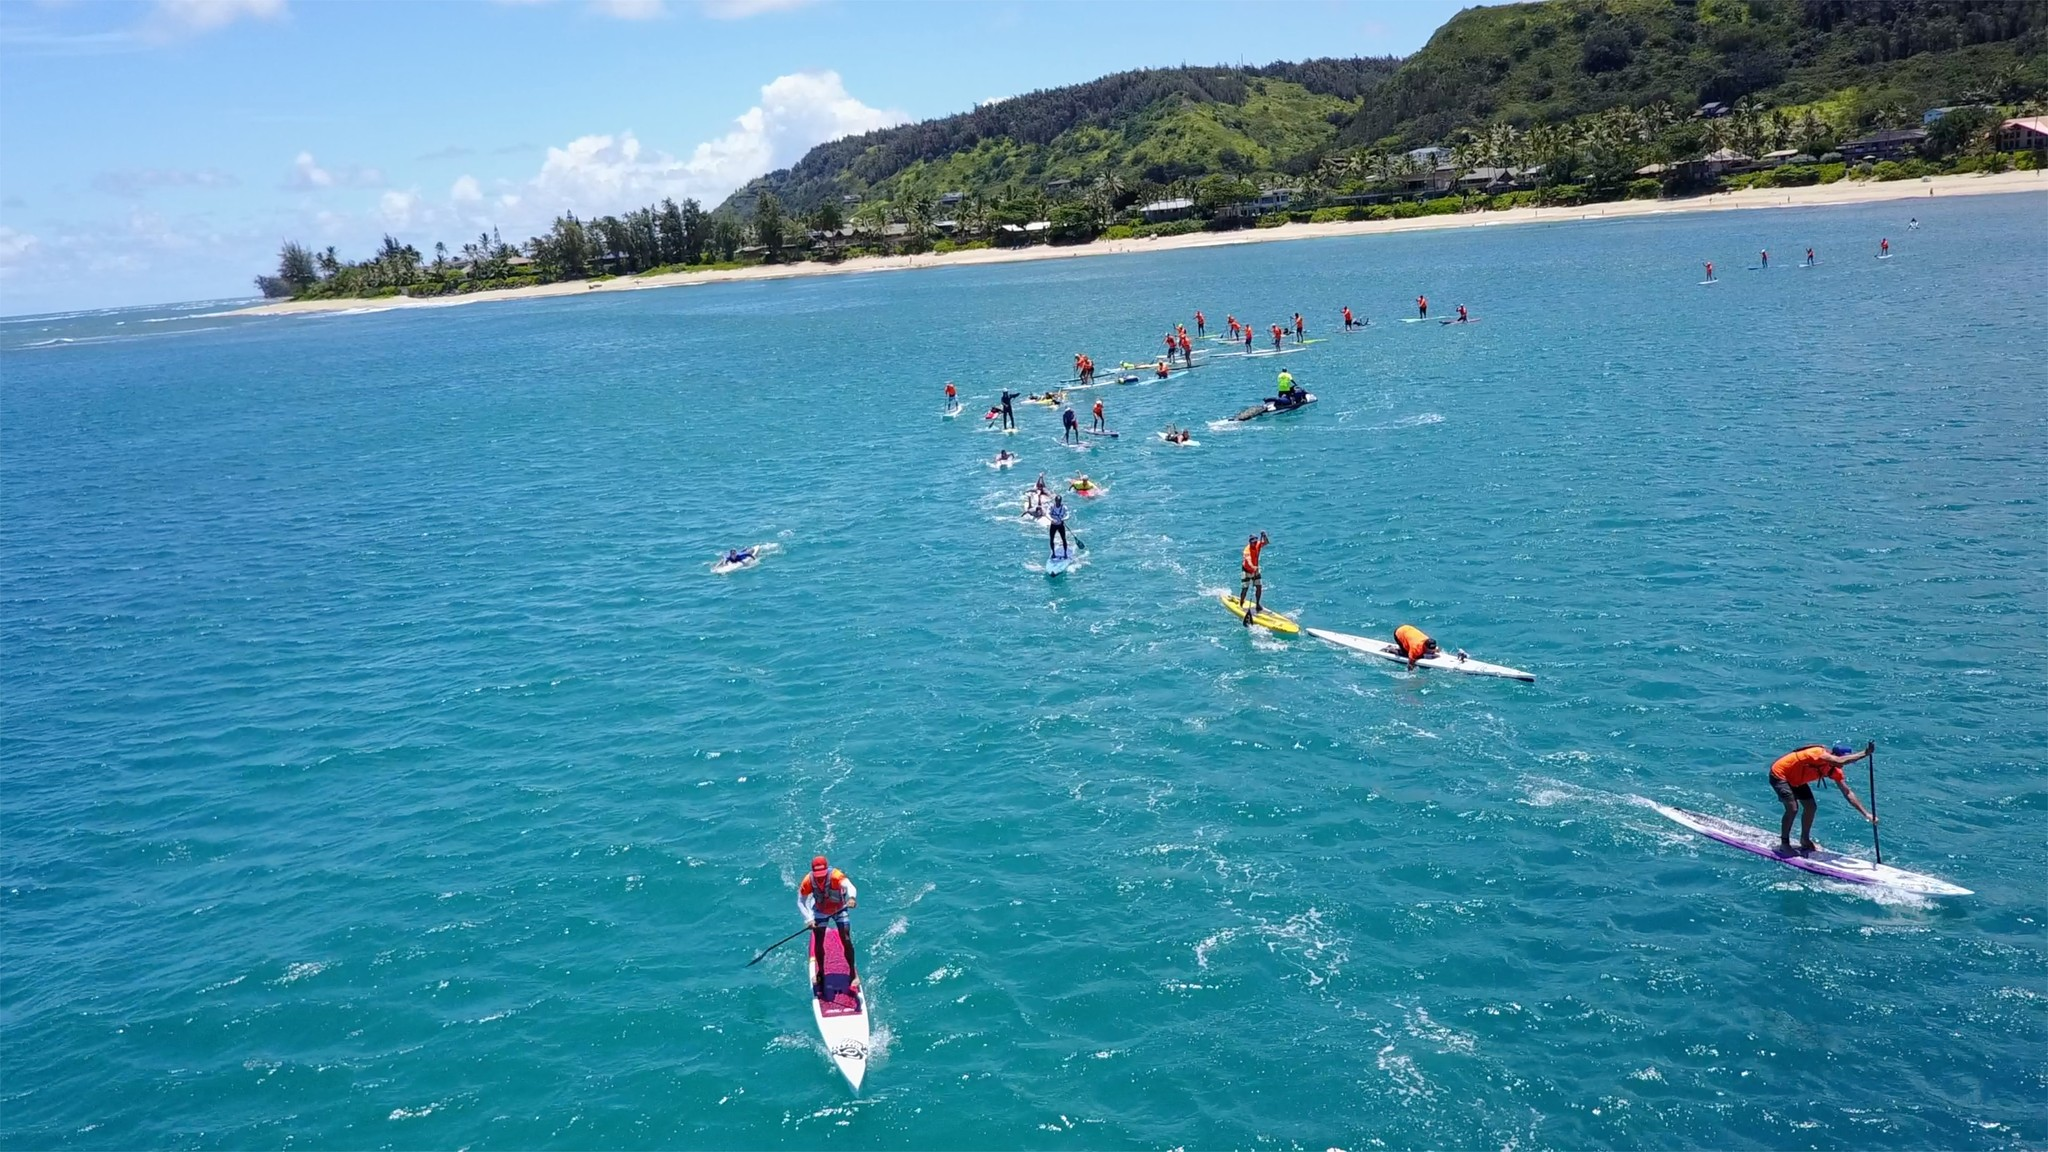 Blue Planet Wet Feet Hawaii Paddleboard race